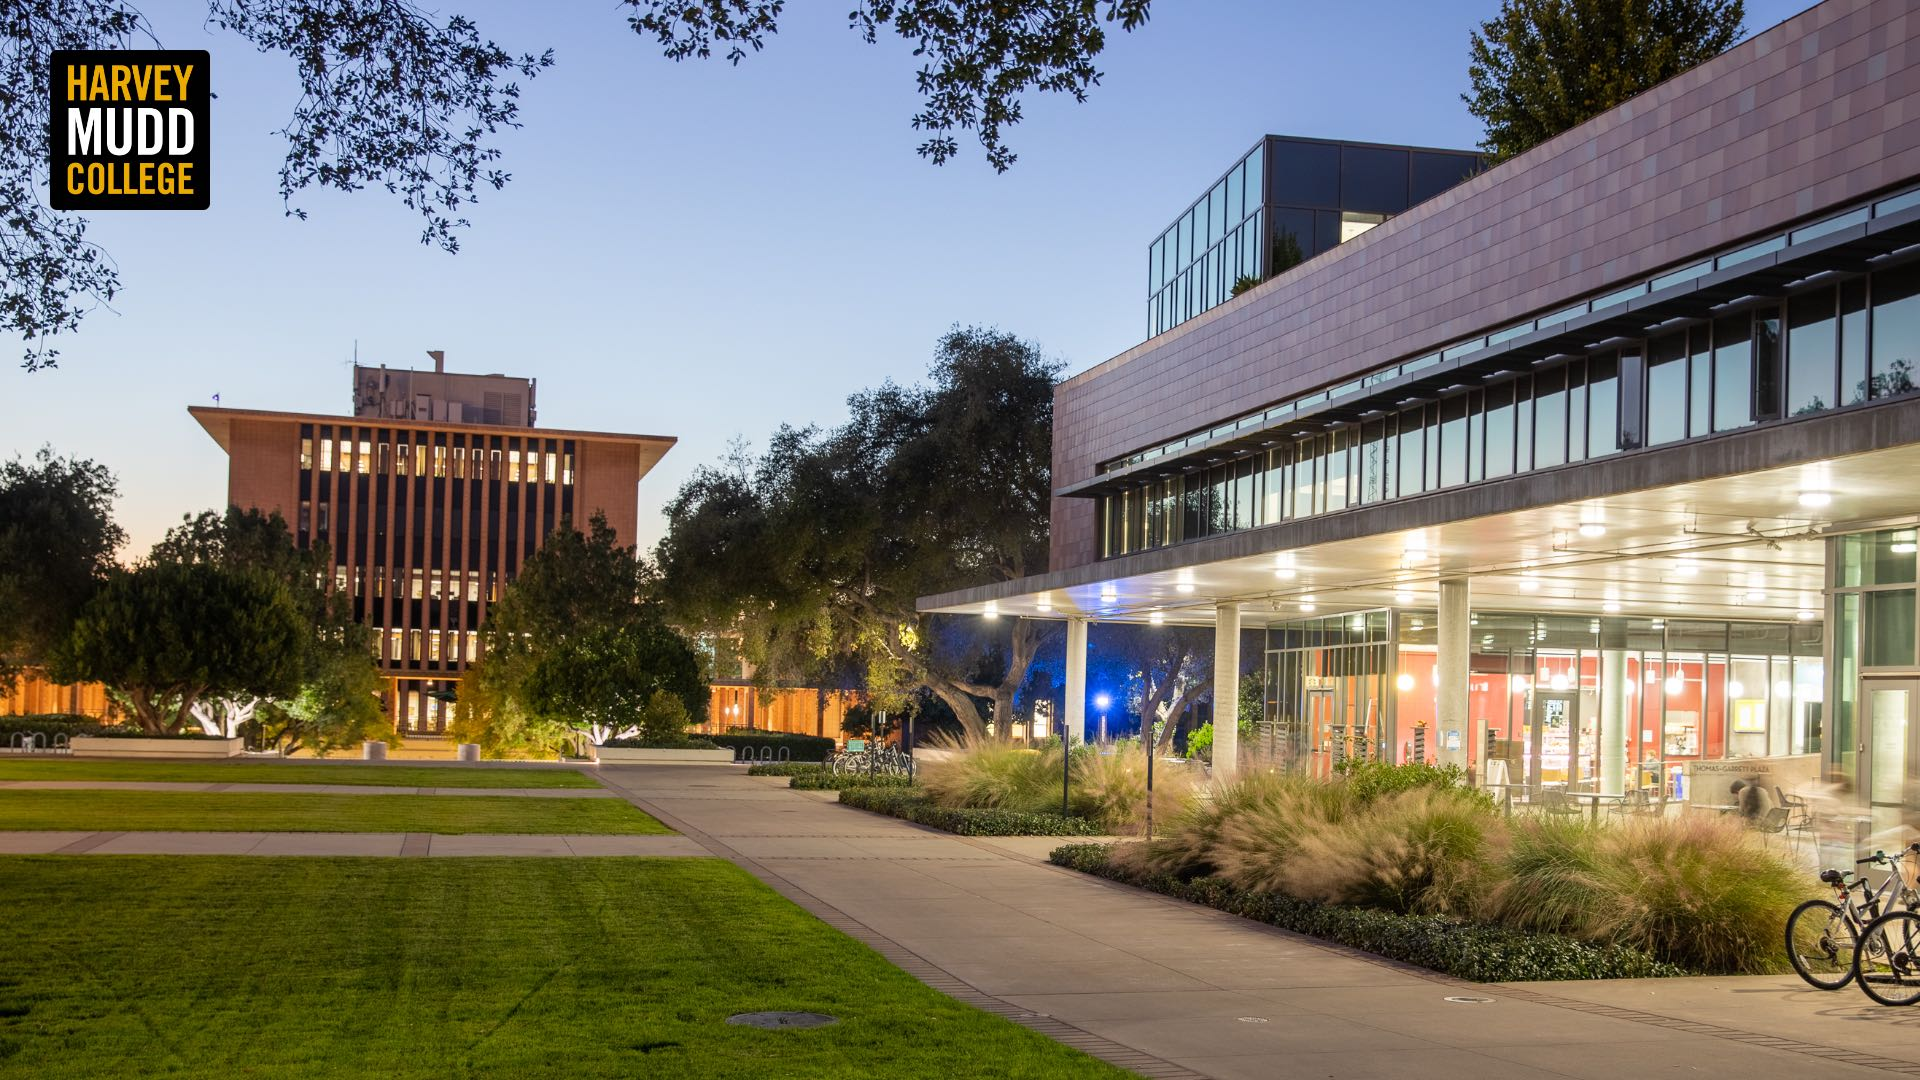 Shanahan Center and Sprague Center, looking west at night, Harvey Mudd College